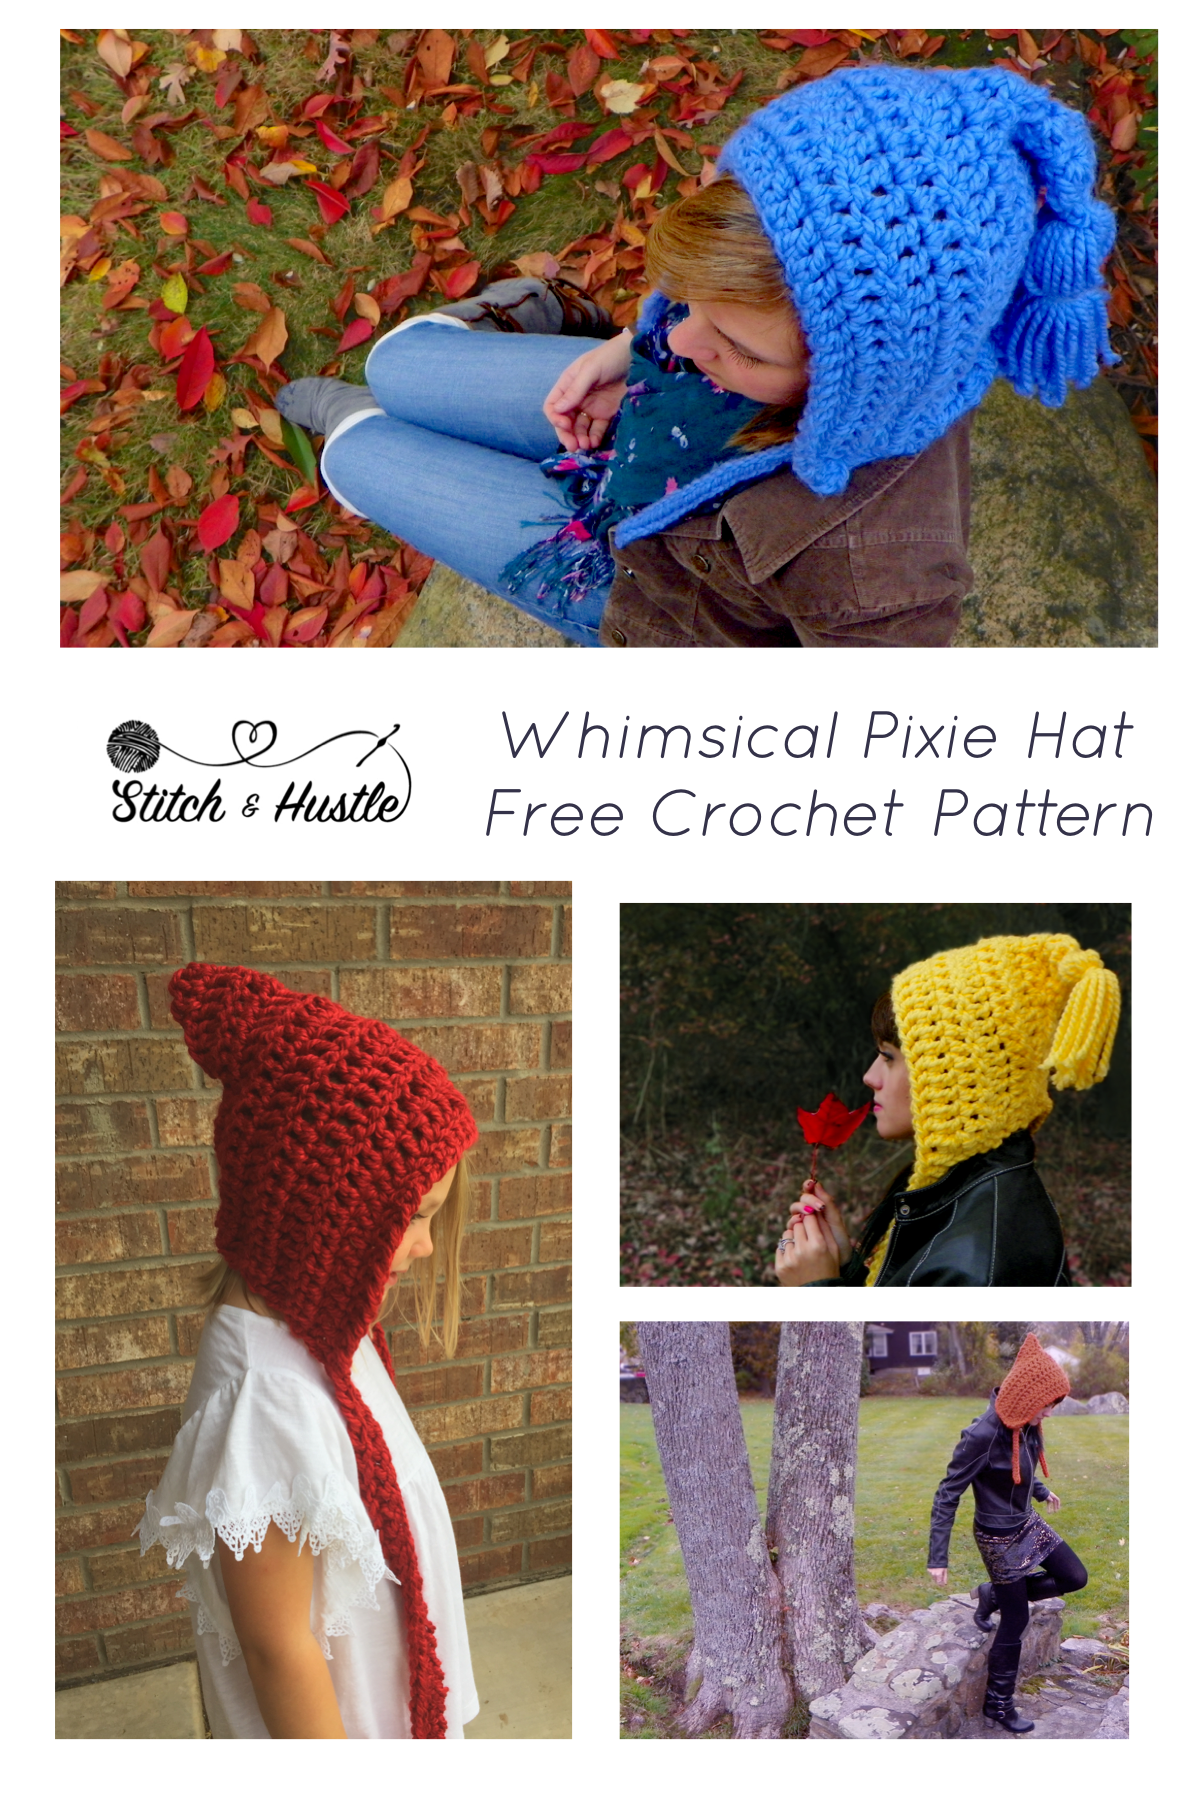 pixie-hat-free-crochet-Pattern .jpeg